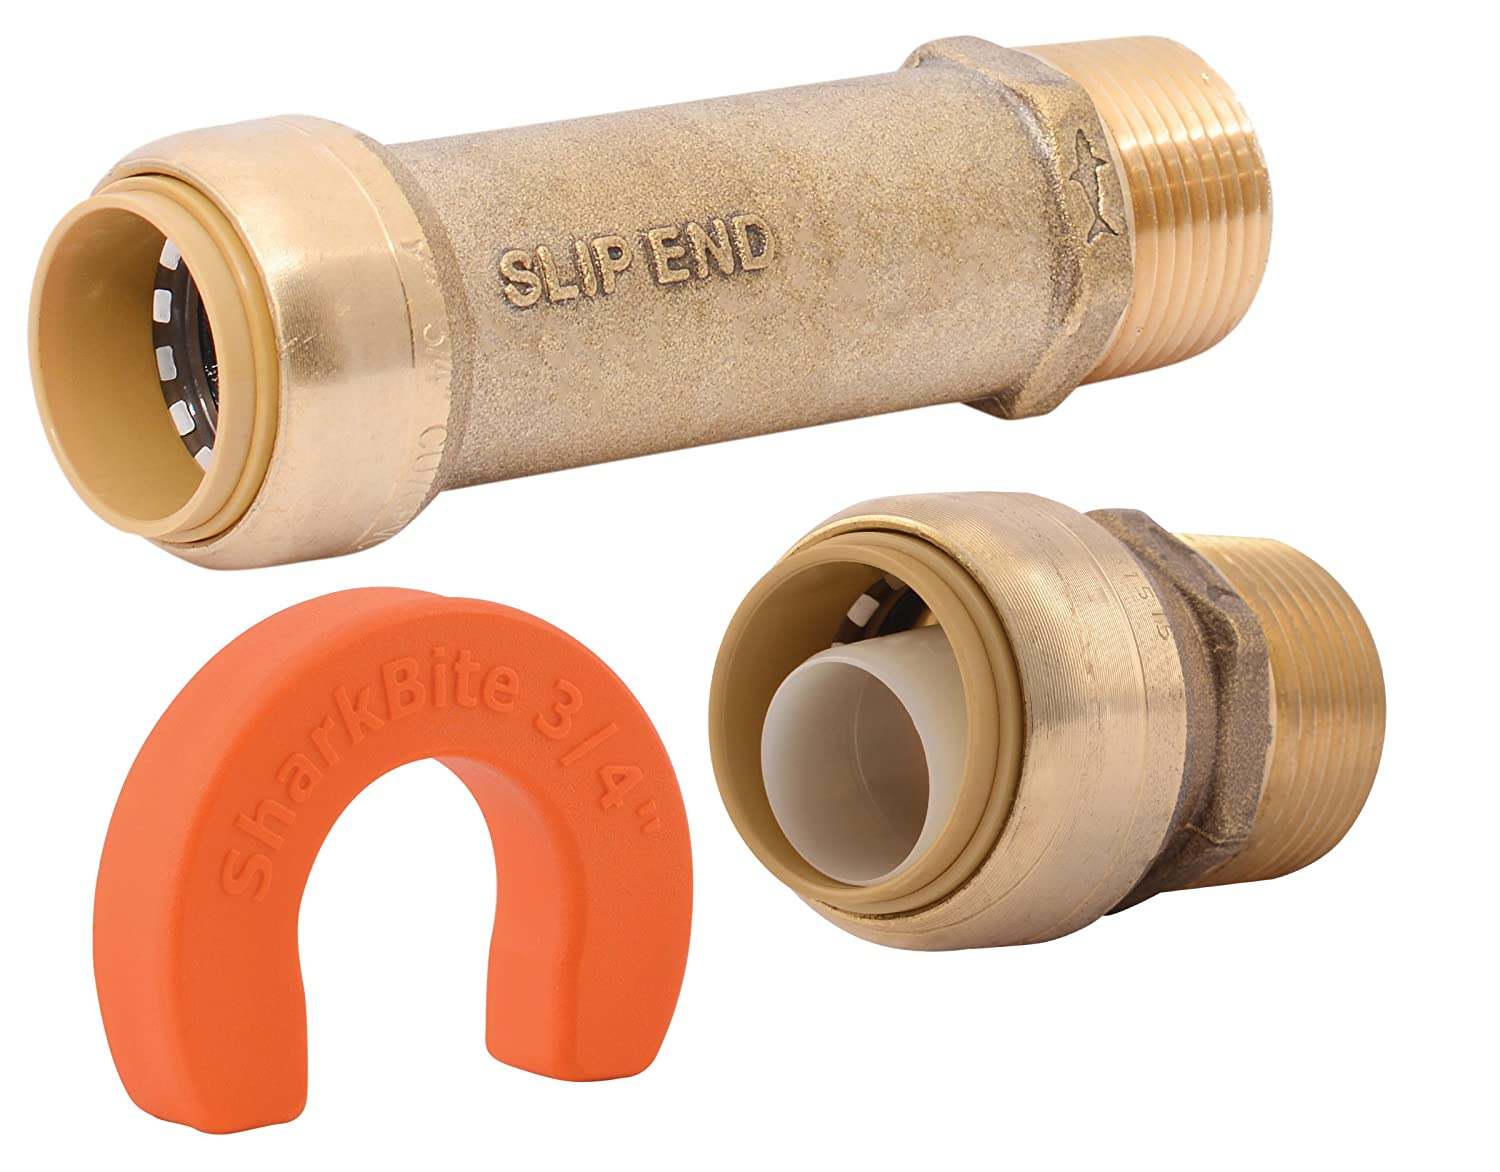 SharkBite Whole House 25561 x 3/4 inch, Water Filter Installation Kit, Push-to-Connect, PEX, Copper, CPVC, PE-RT, 3/4 inch x 3/4 inch